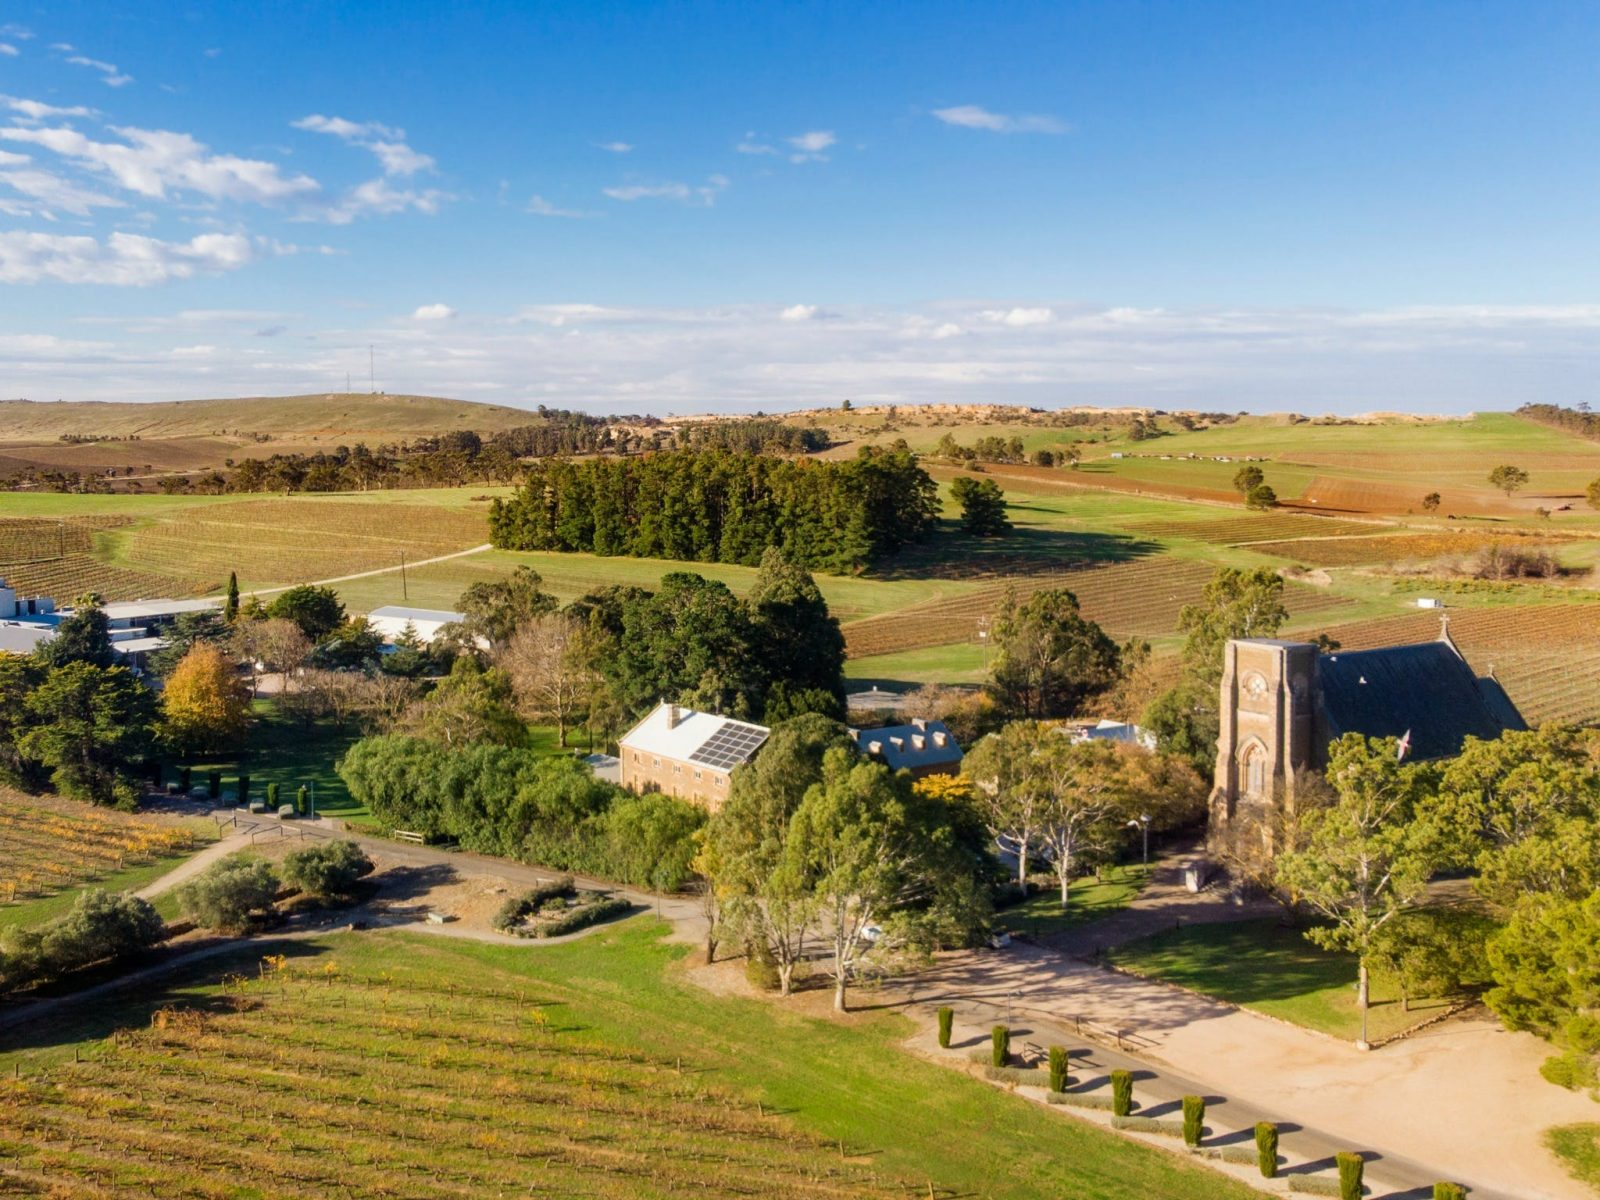 Explore Sevenhill Cellars winery and historical sites